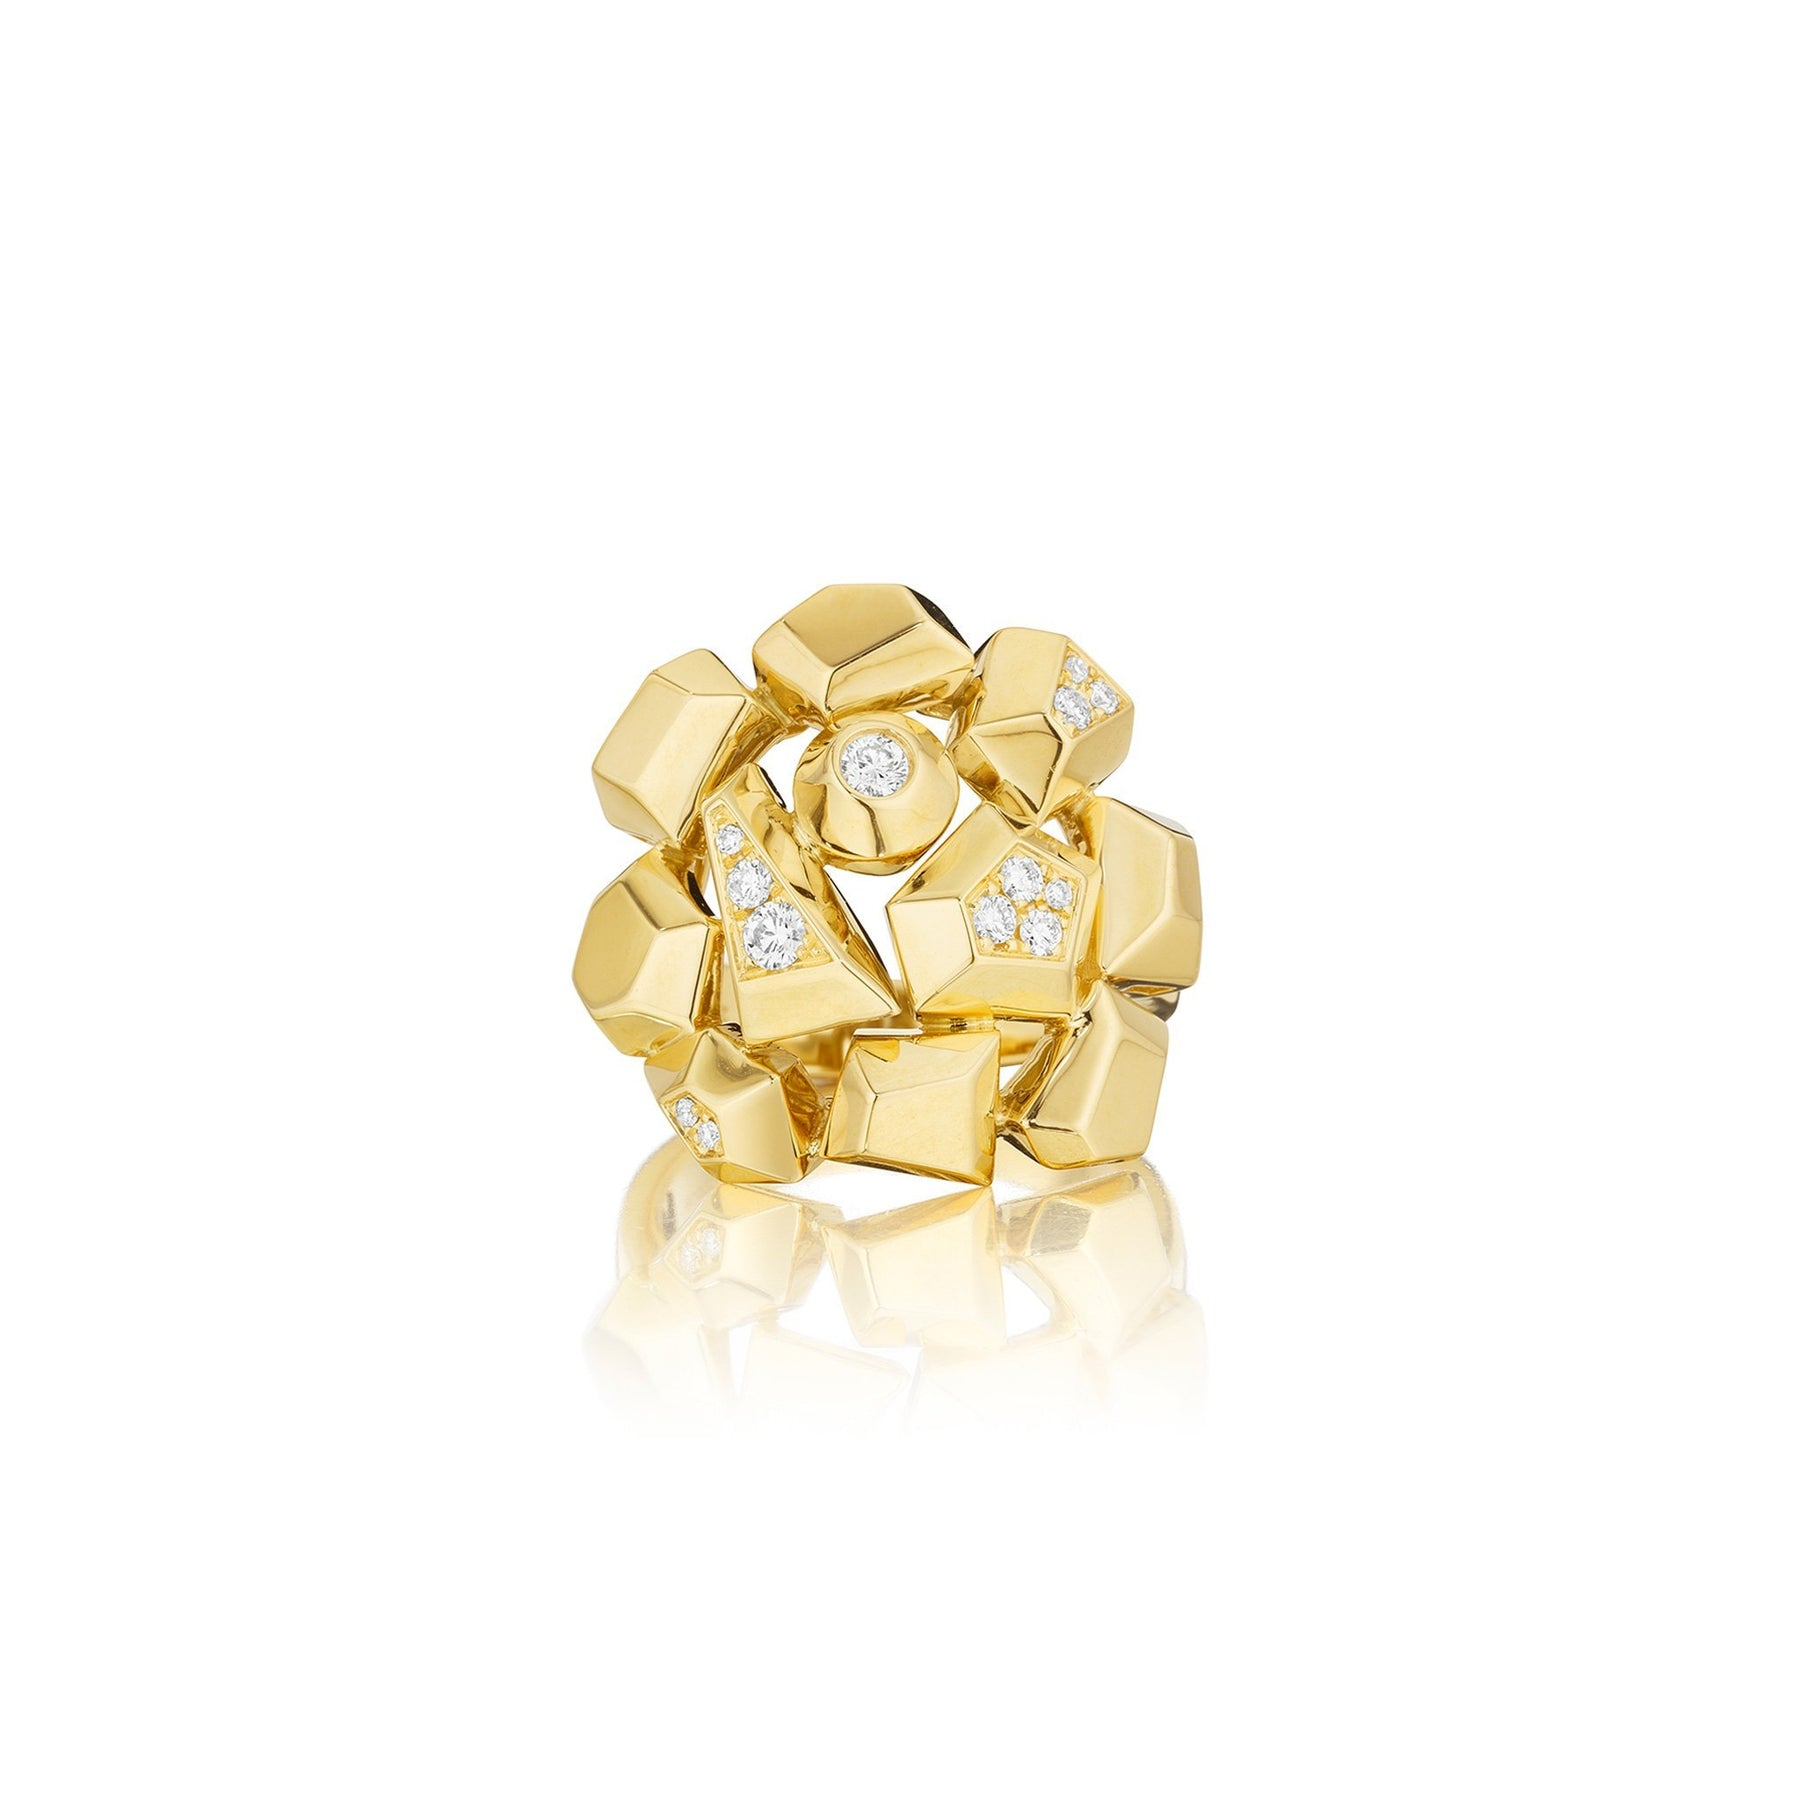 Mimi-So-Jackson-Cluster-Diamond-Ring_18k Yellow Gold